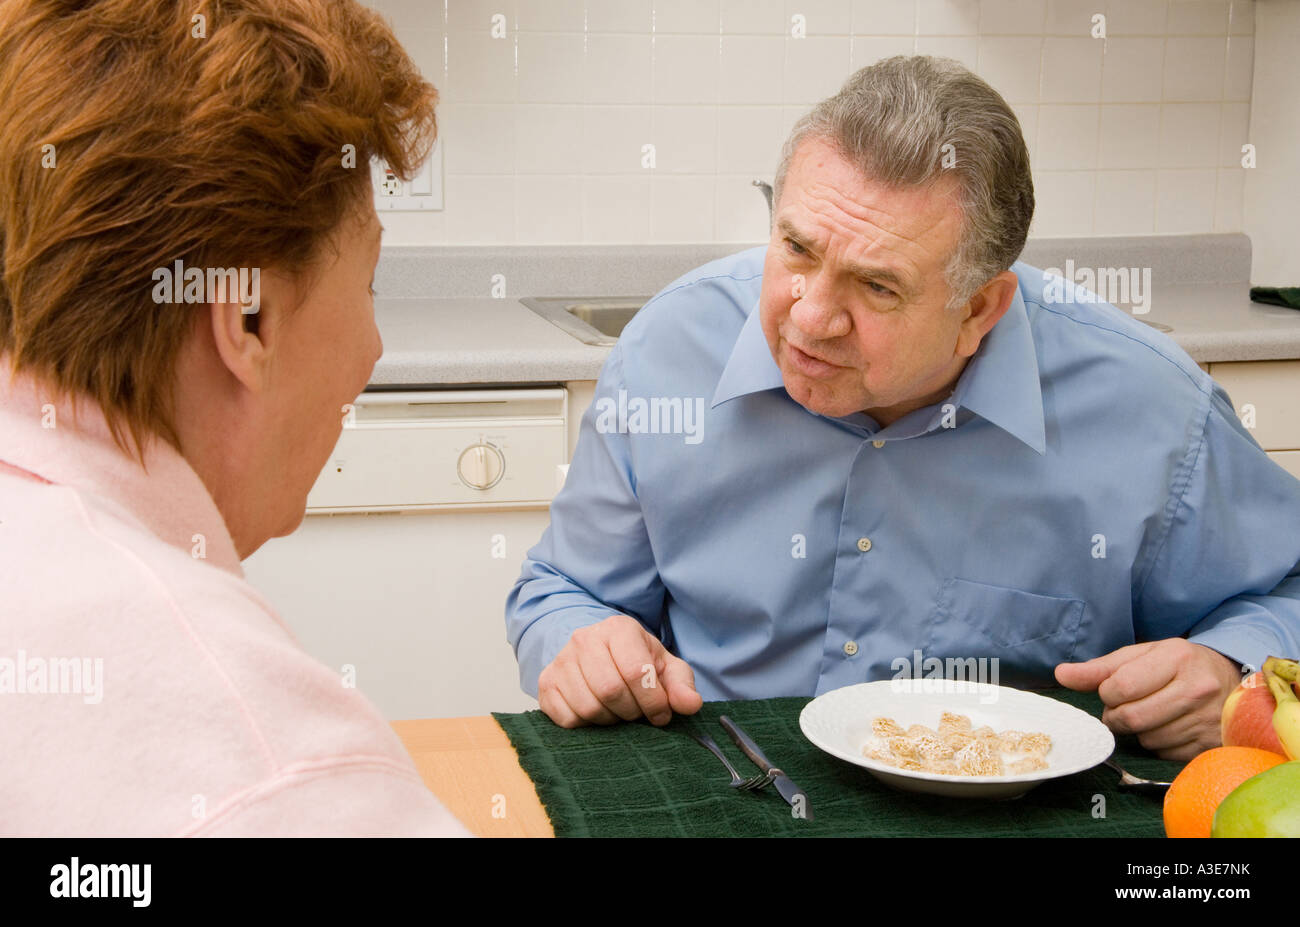 Senior married couple arguing during a meal. - Stock Image